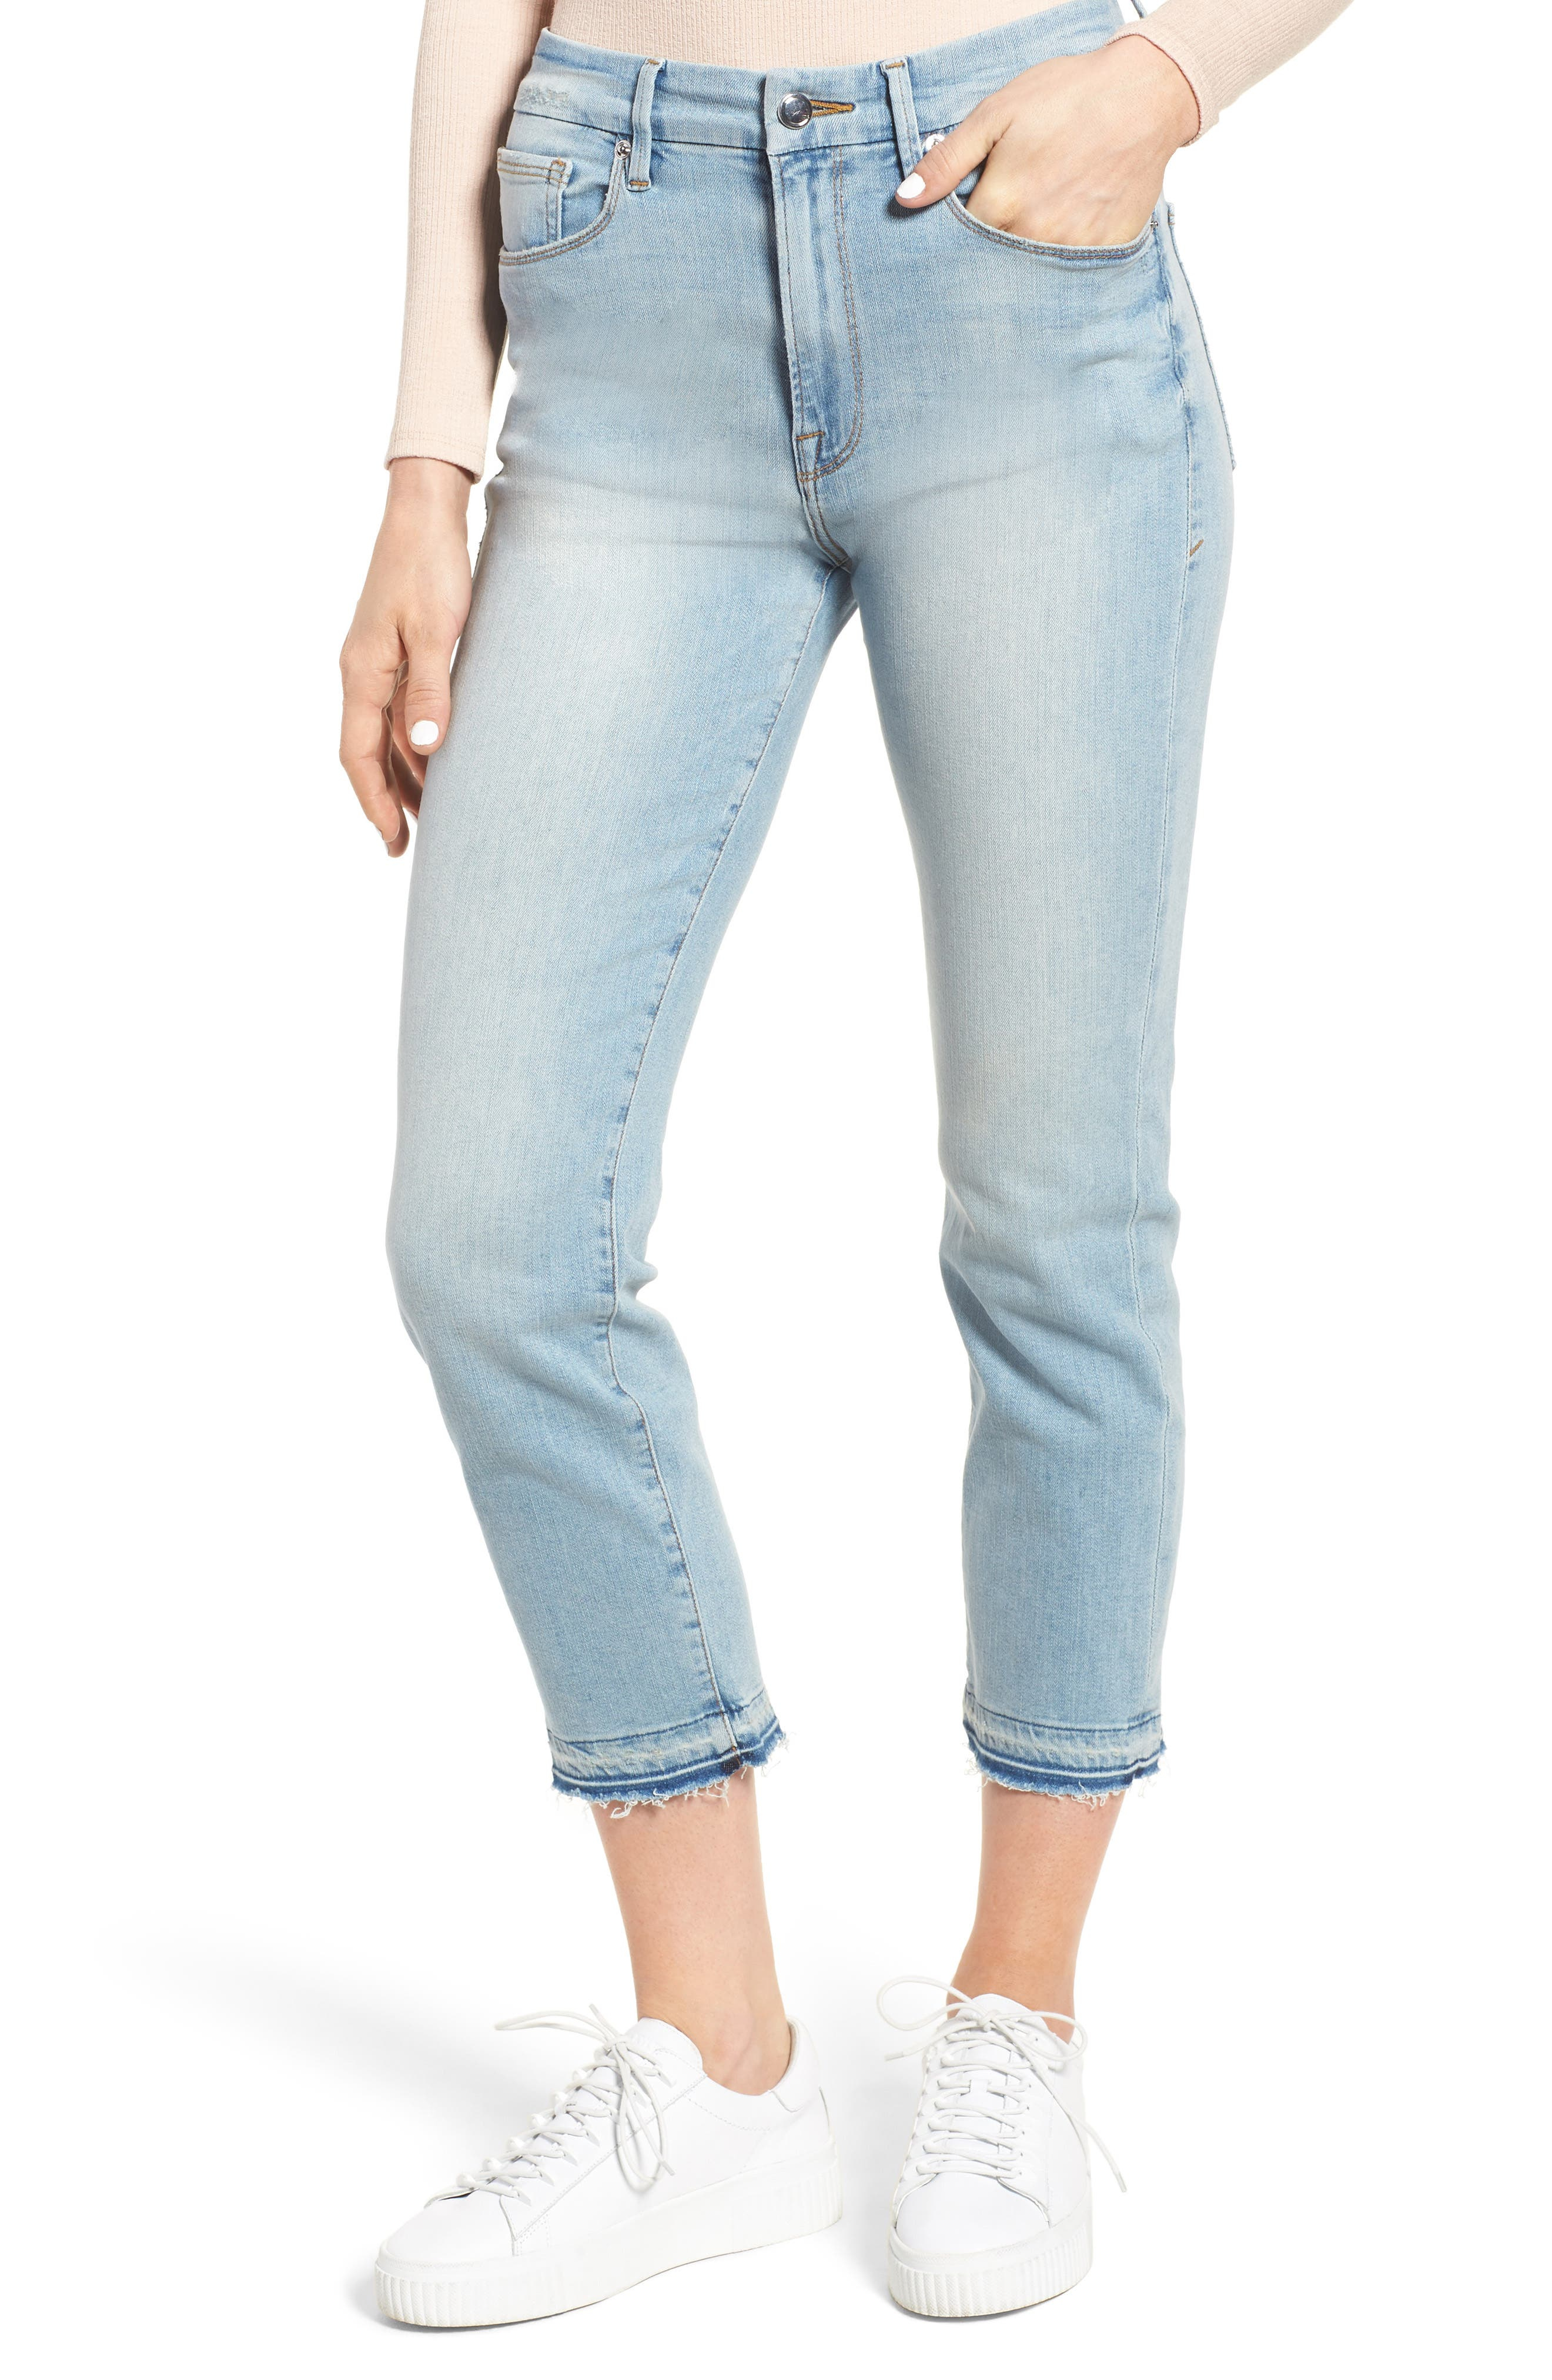 Main Image - Good American Good Waist High Rise Skinny Jeans (Blue 016) (Extended Sizes)